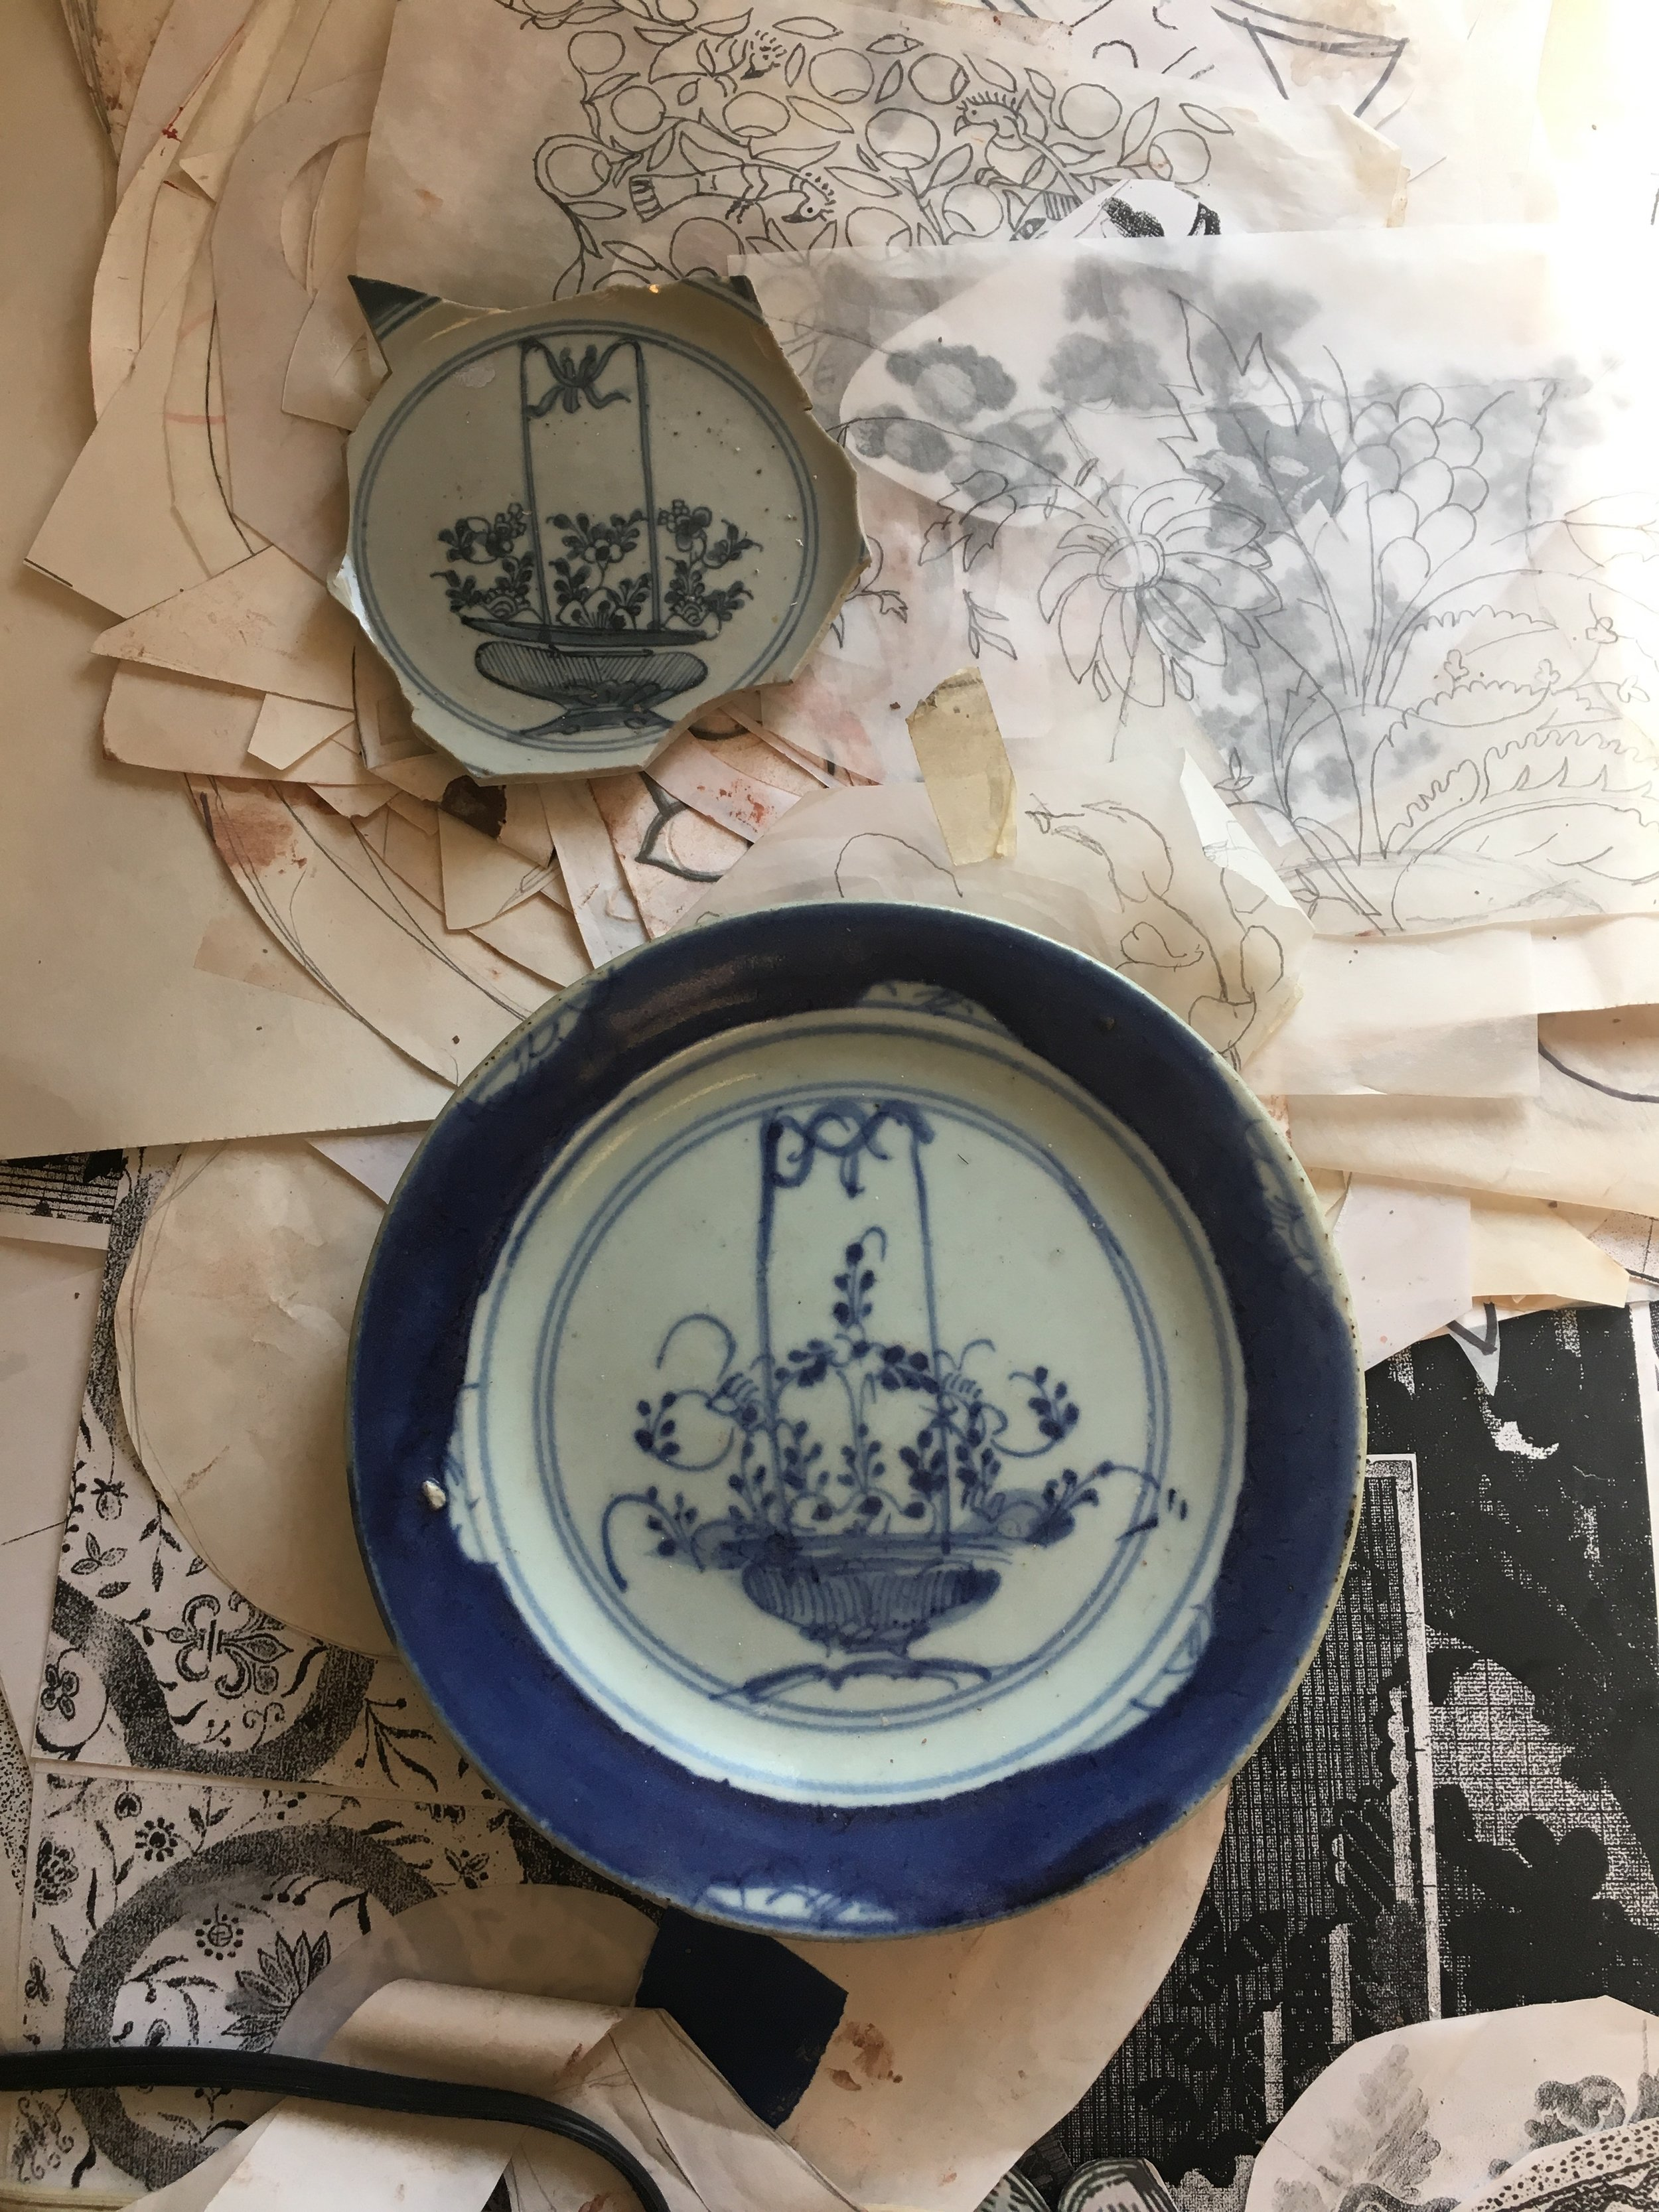 Andrea's most recent body of work is inspired by Chinese export ware.